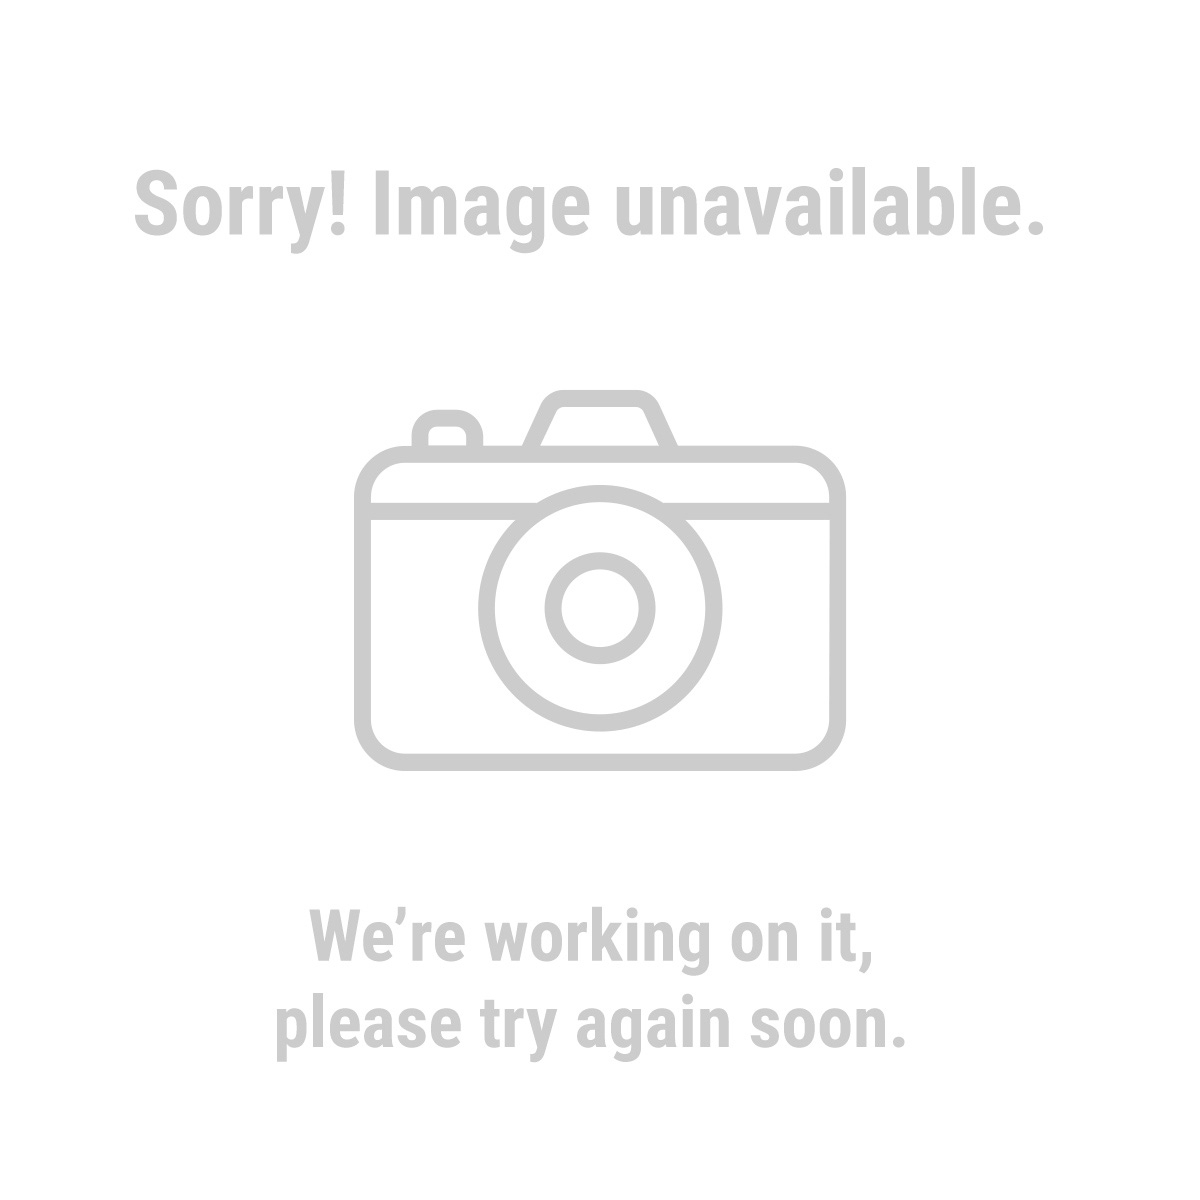 "Harbor Freight Tools 91906 Pack of 2 Terrycloth Bonnets - 9"" to 10"""